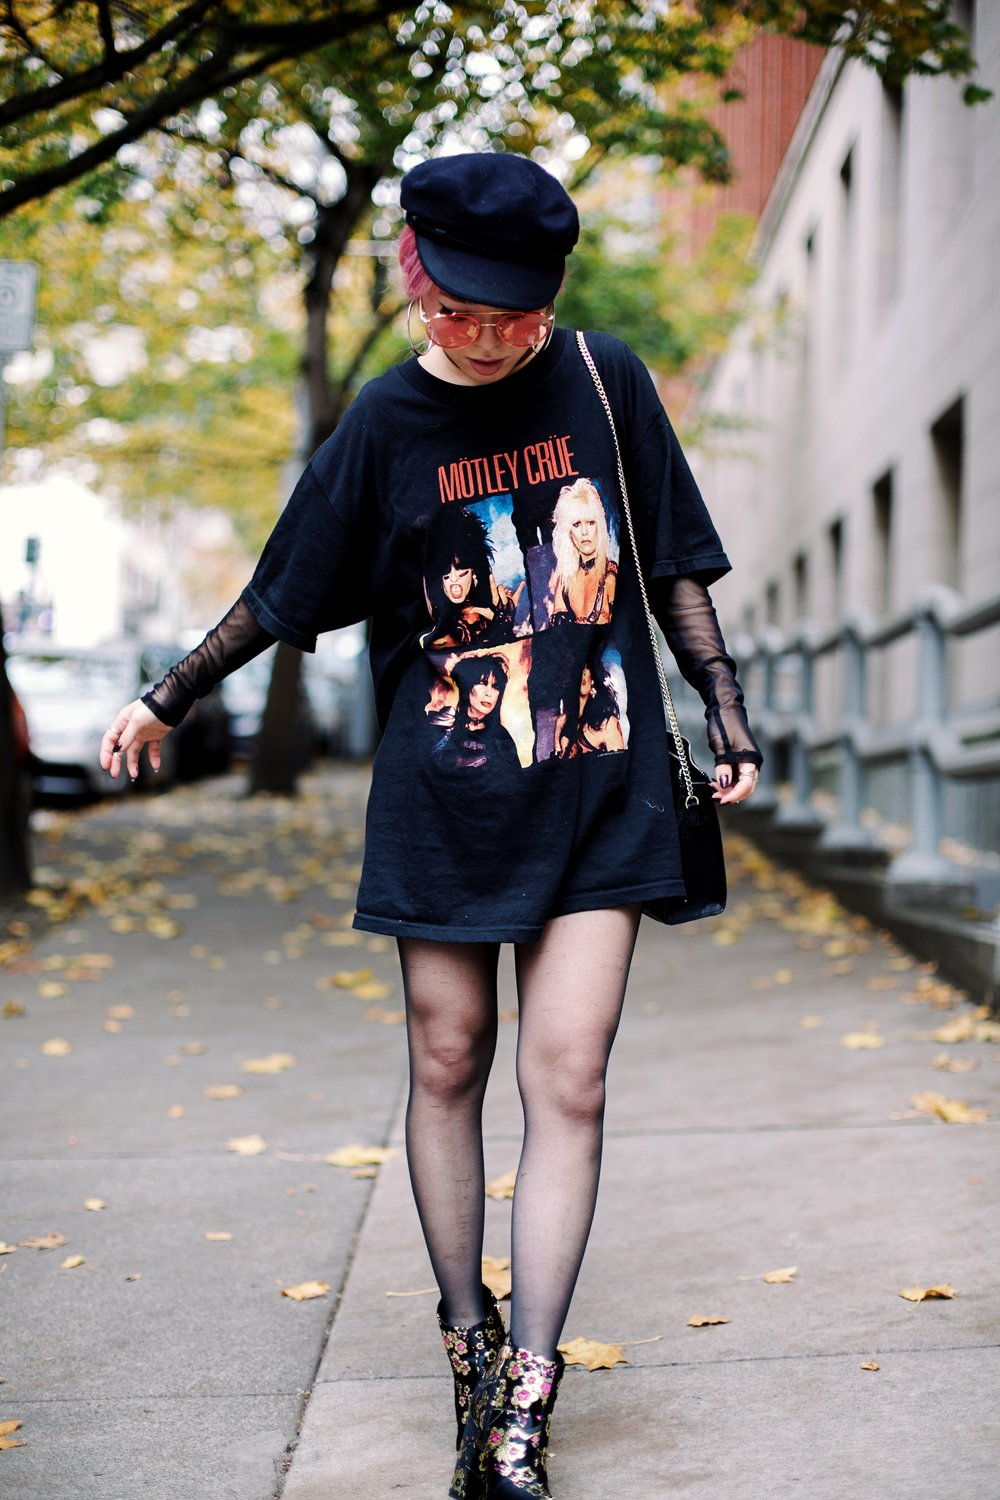 Isabel Marant Hat-Forever 21 hoop earrings-Free People Double Crossed Suede Choker-Vintage Rock T-shirt-Zara sheer top & EMBROIDERED CLUTCH-Ego Shona Gold/Purple Floral Print Ankle Boot-Aika's love Closet-Seattle Fashion Blogger-Japanese-Pink hair-Colored Hair